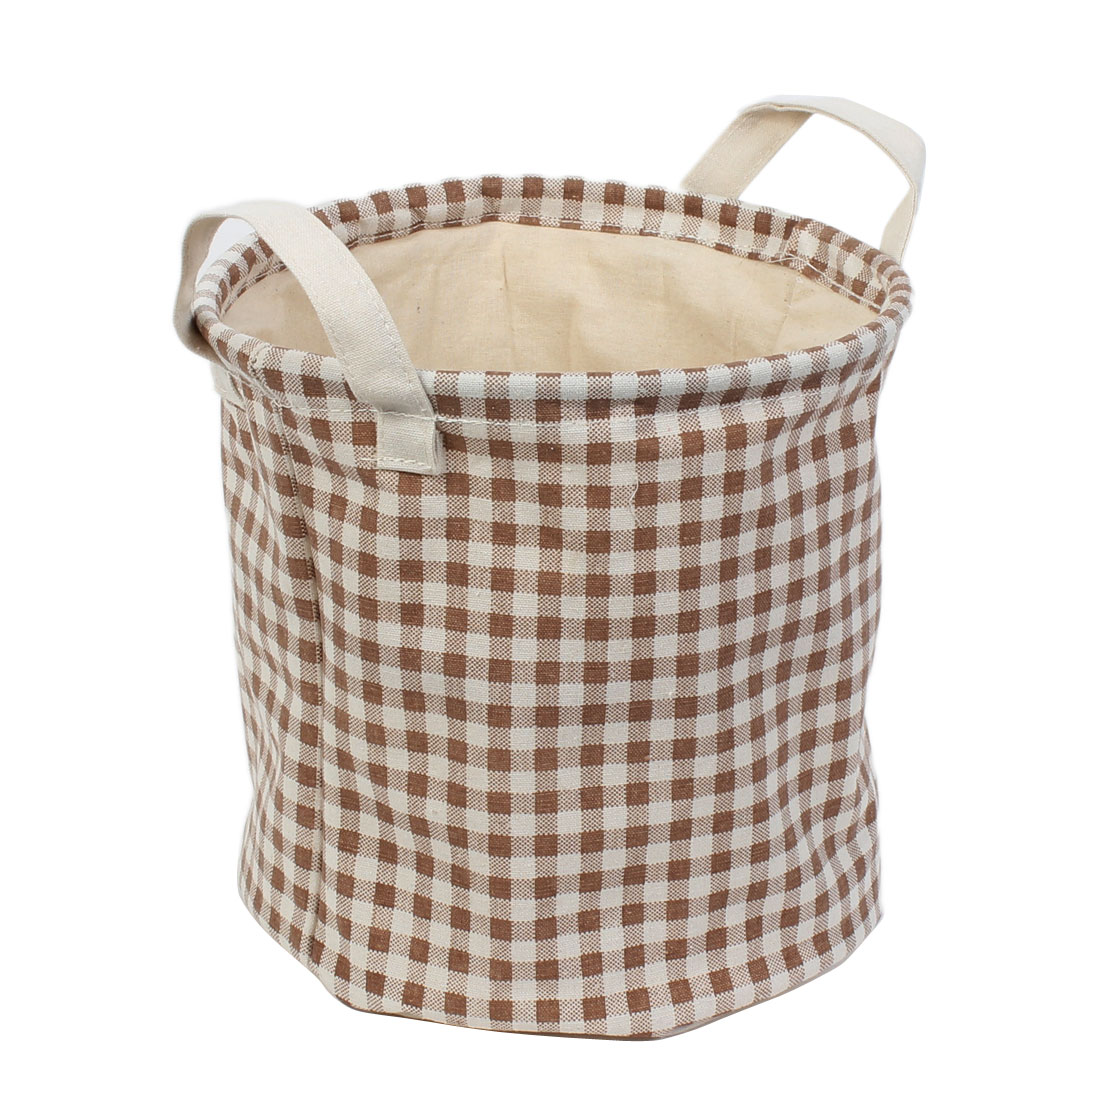 Cylinder Design Grid Pattern Drawstring Closure Storage Bucket Basket 23 x 22cm 2pcs